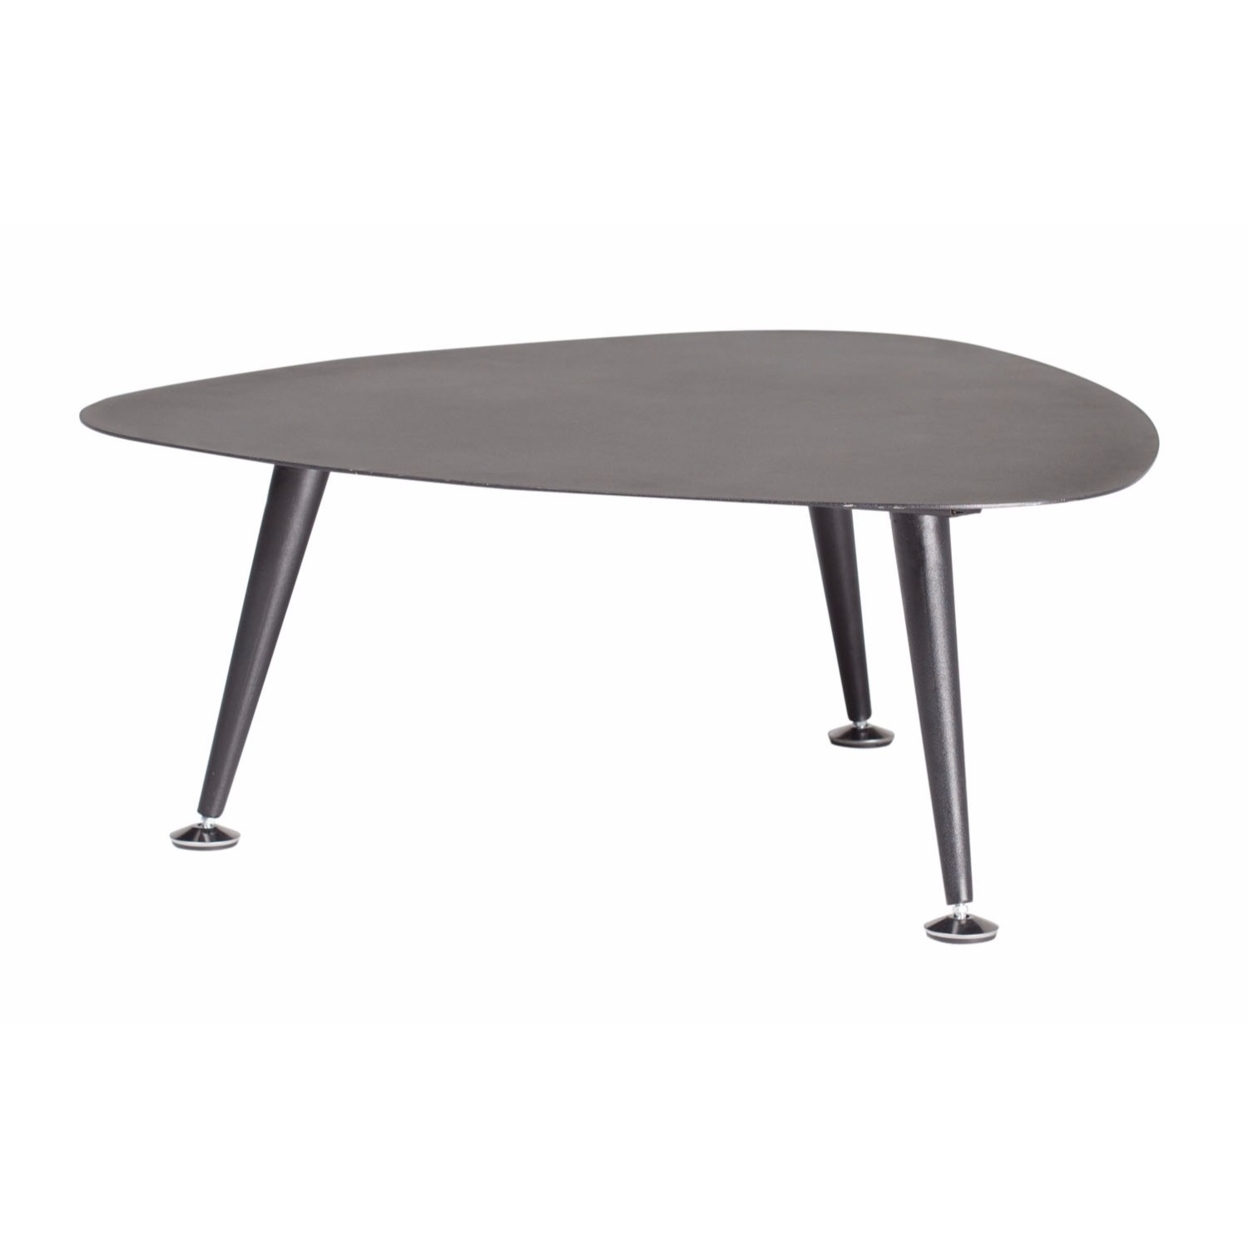 Studio Designs Trilateral Accent Table 40, Black (4)